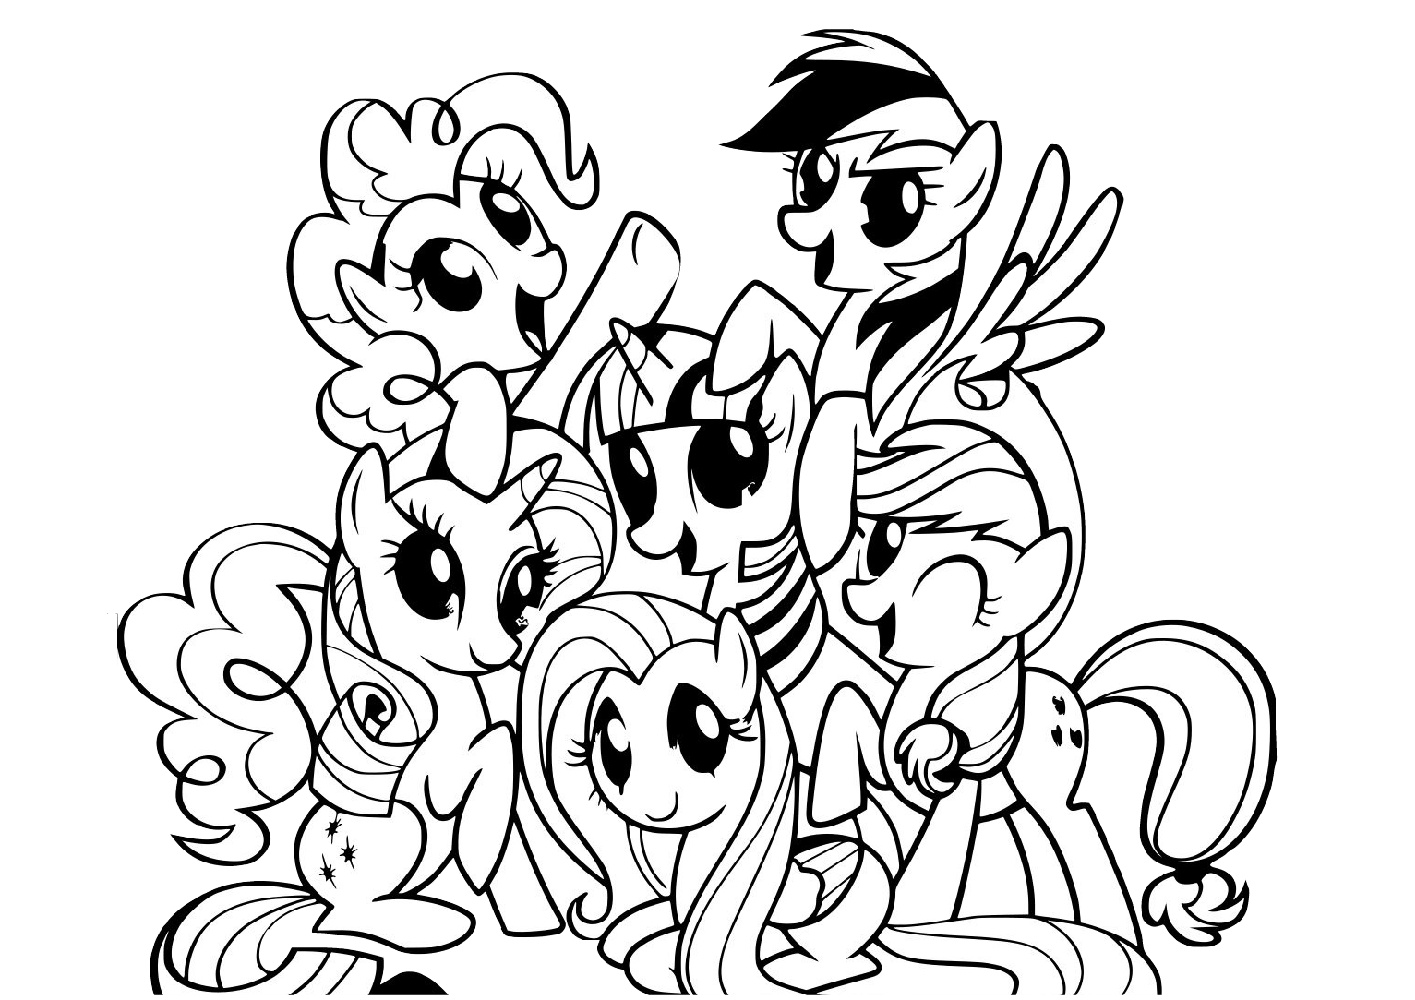 coloring cute little pony 23 my little pony coloring pages for girls printable pdfs coloring cute pony little